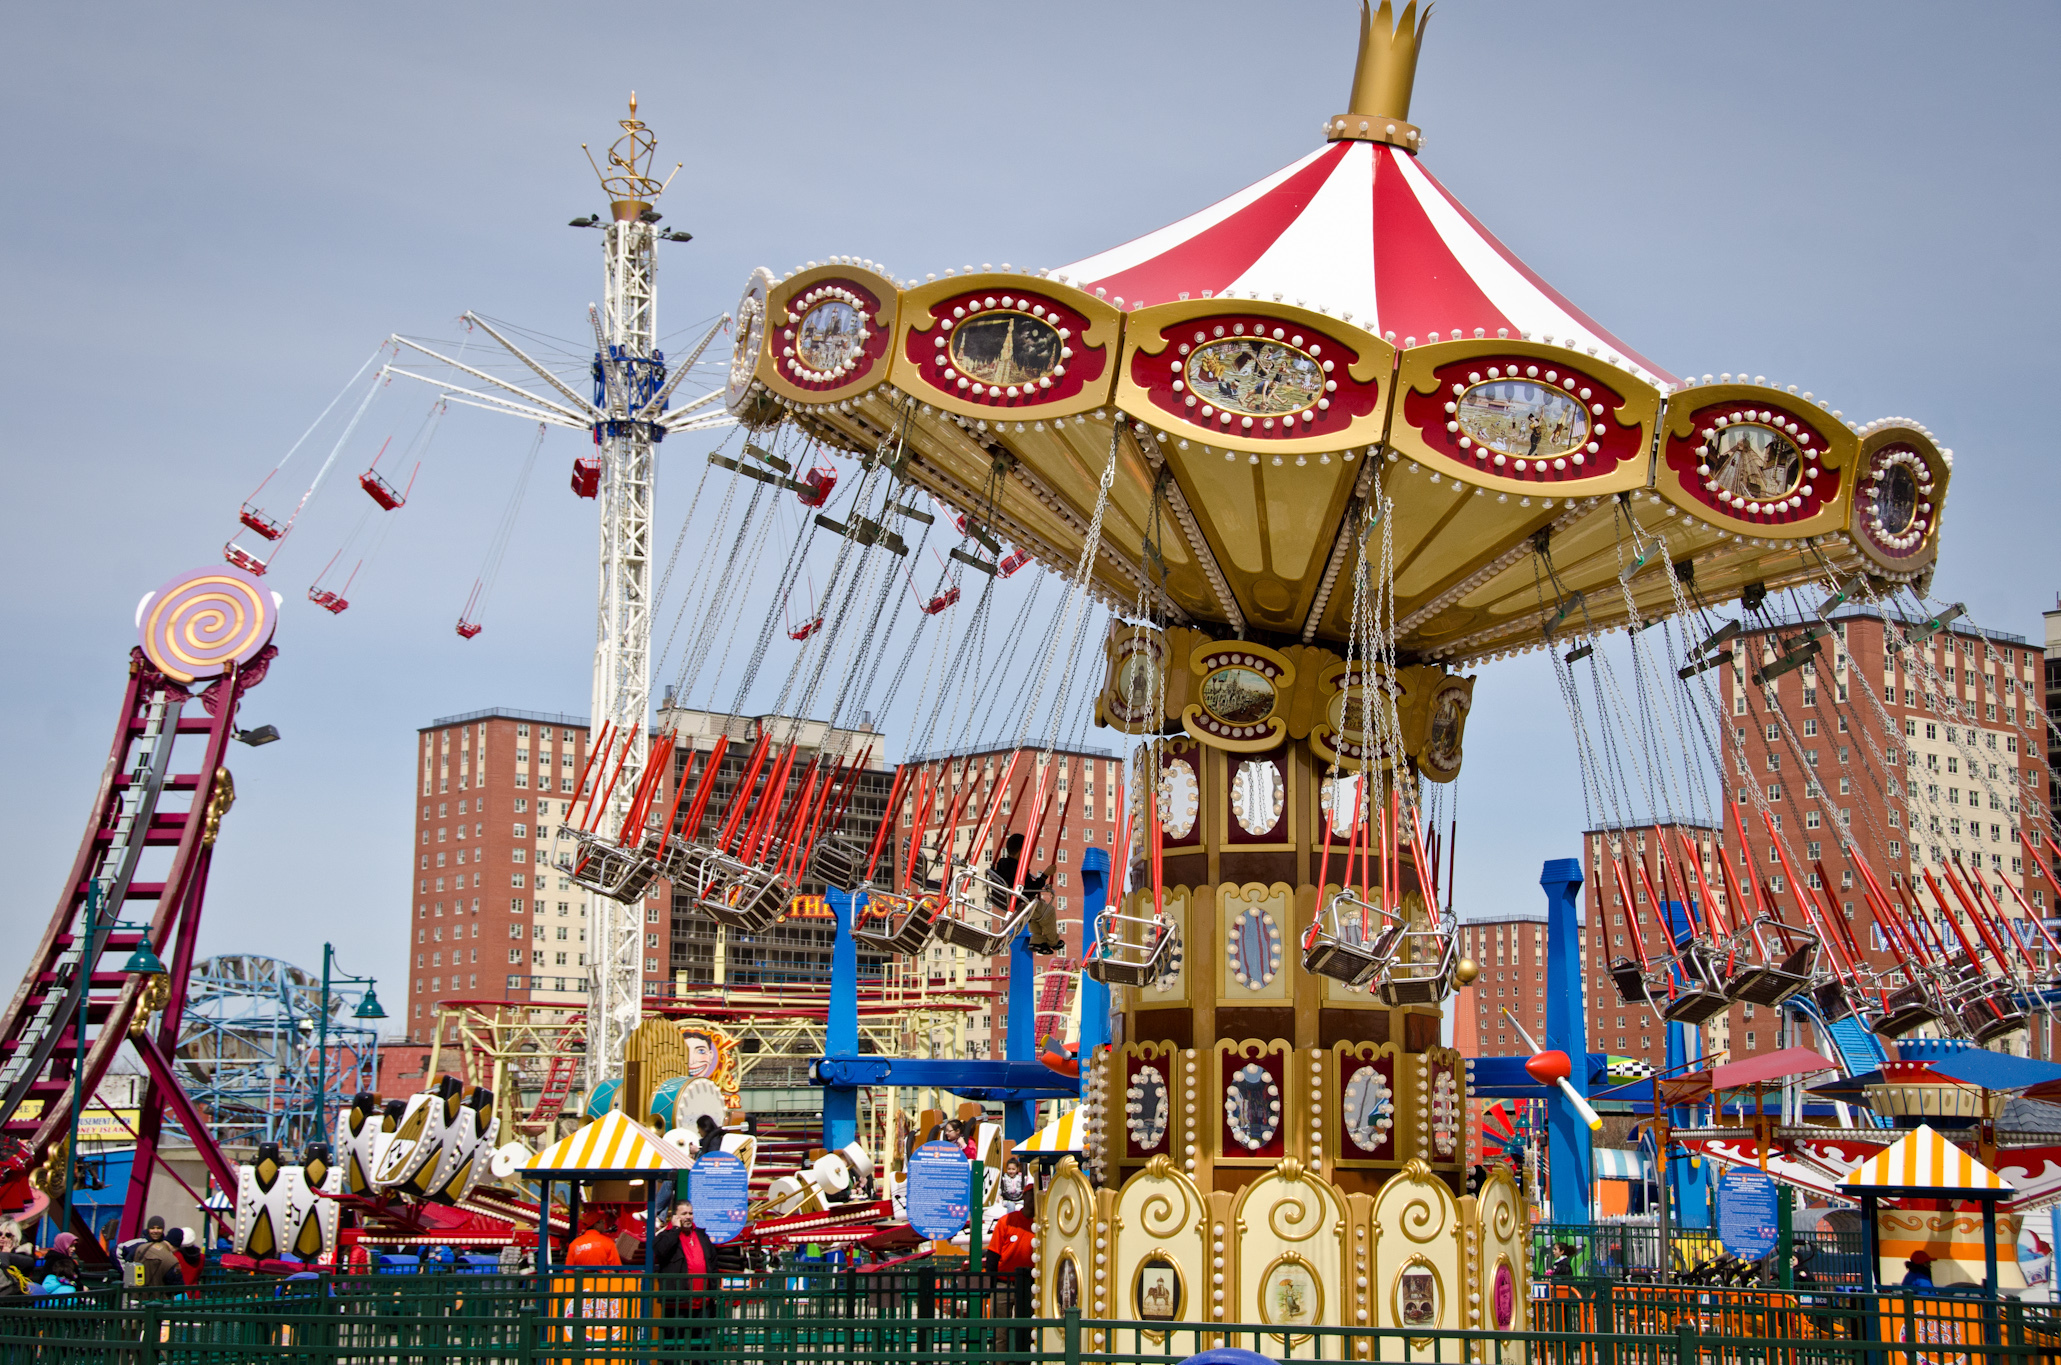 Take a spin on the rides at Luna Park